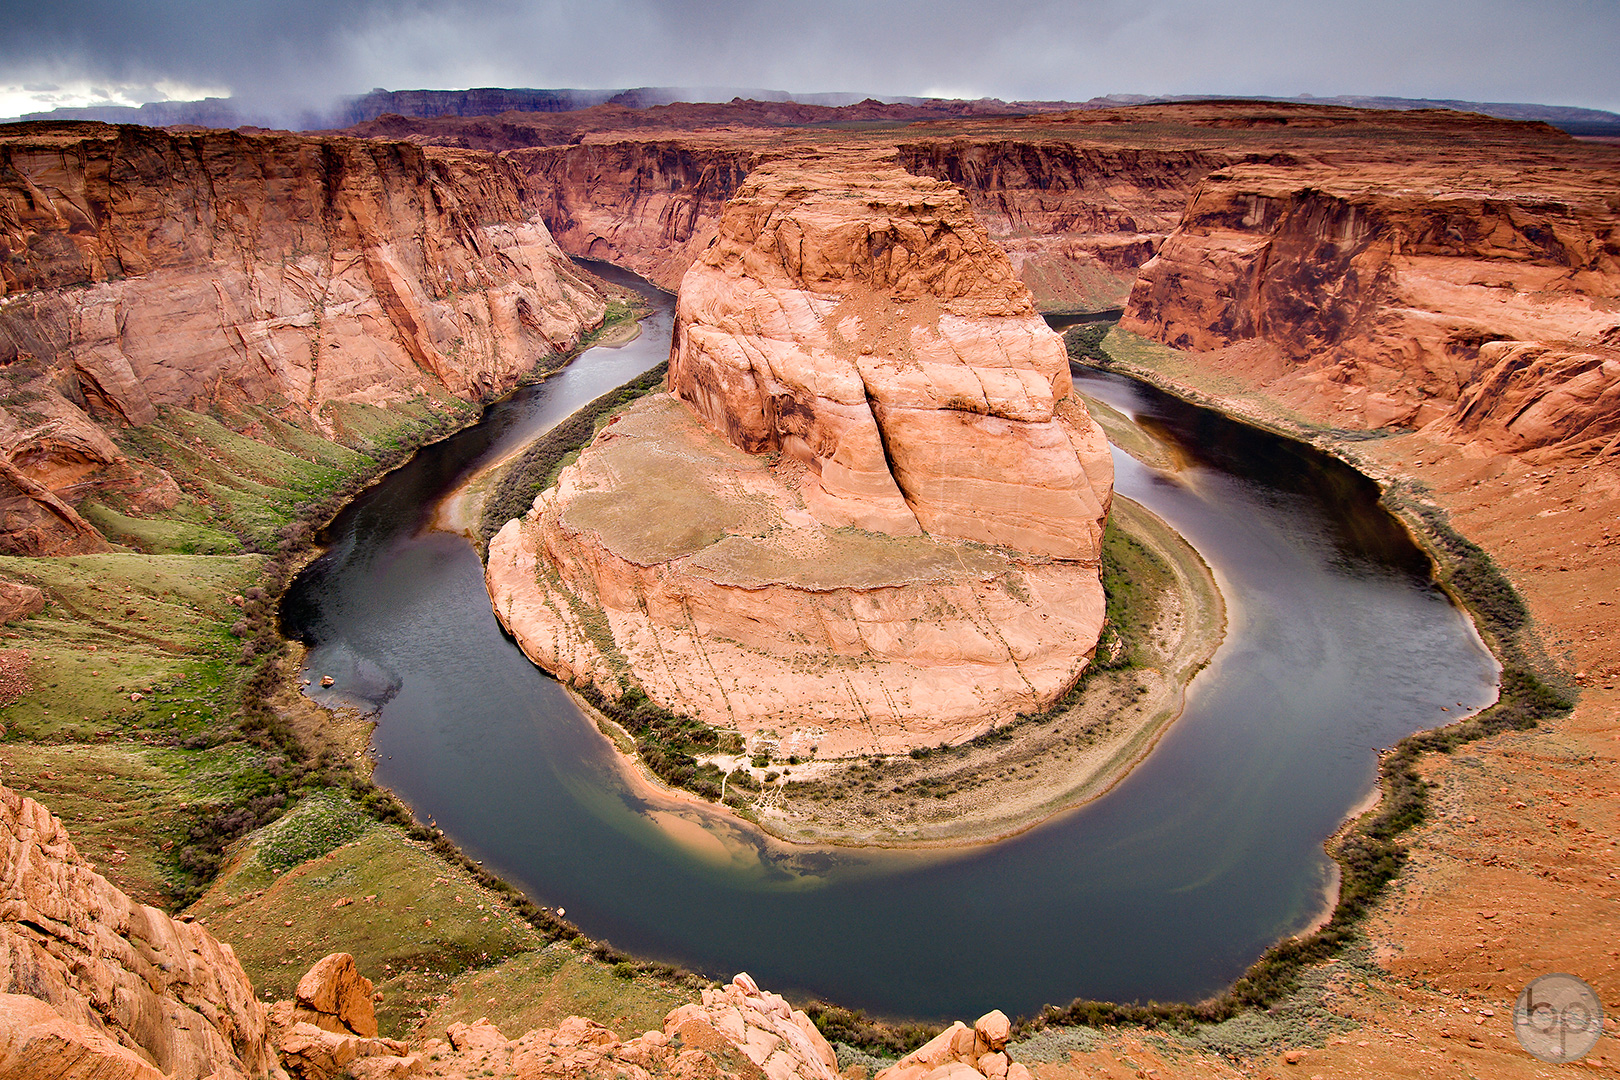 Horseshoe Bend on the Colorado River near Page, Arizona.